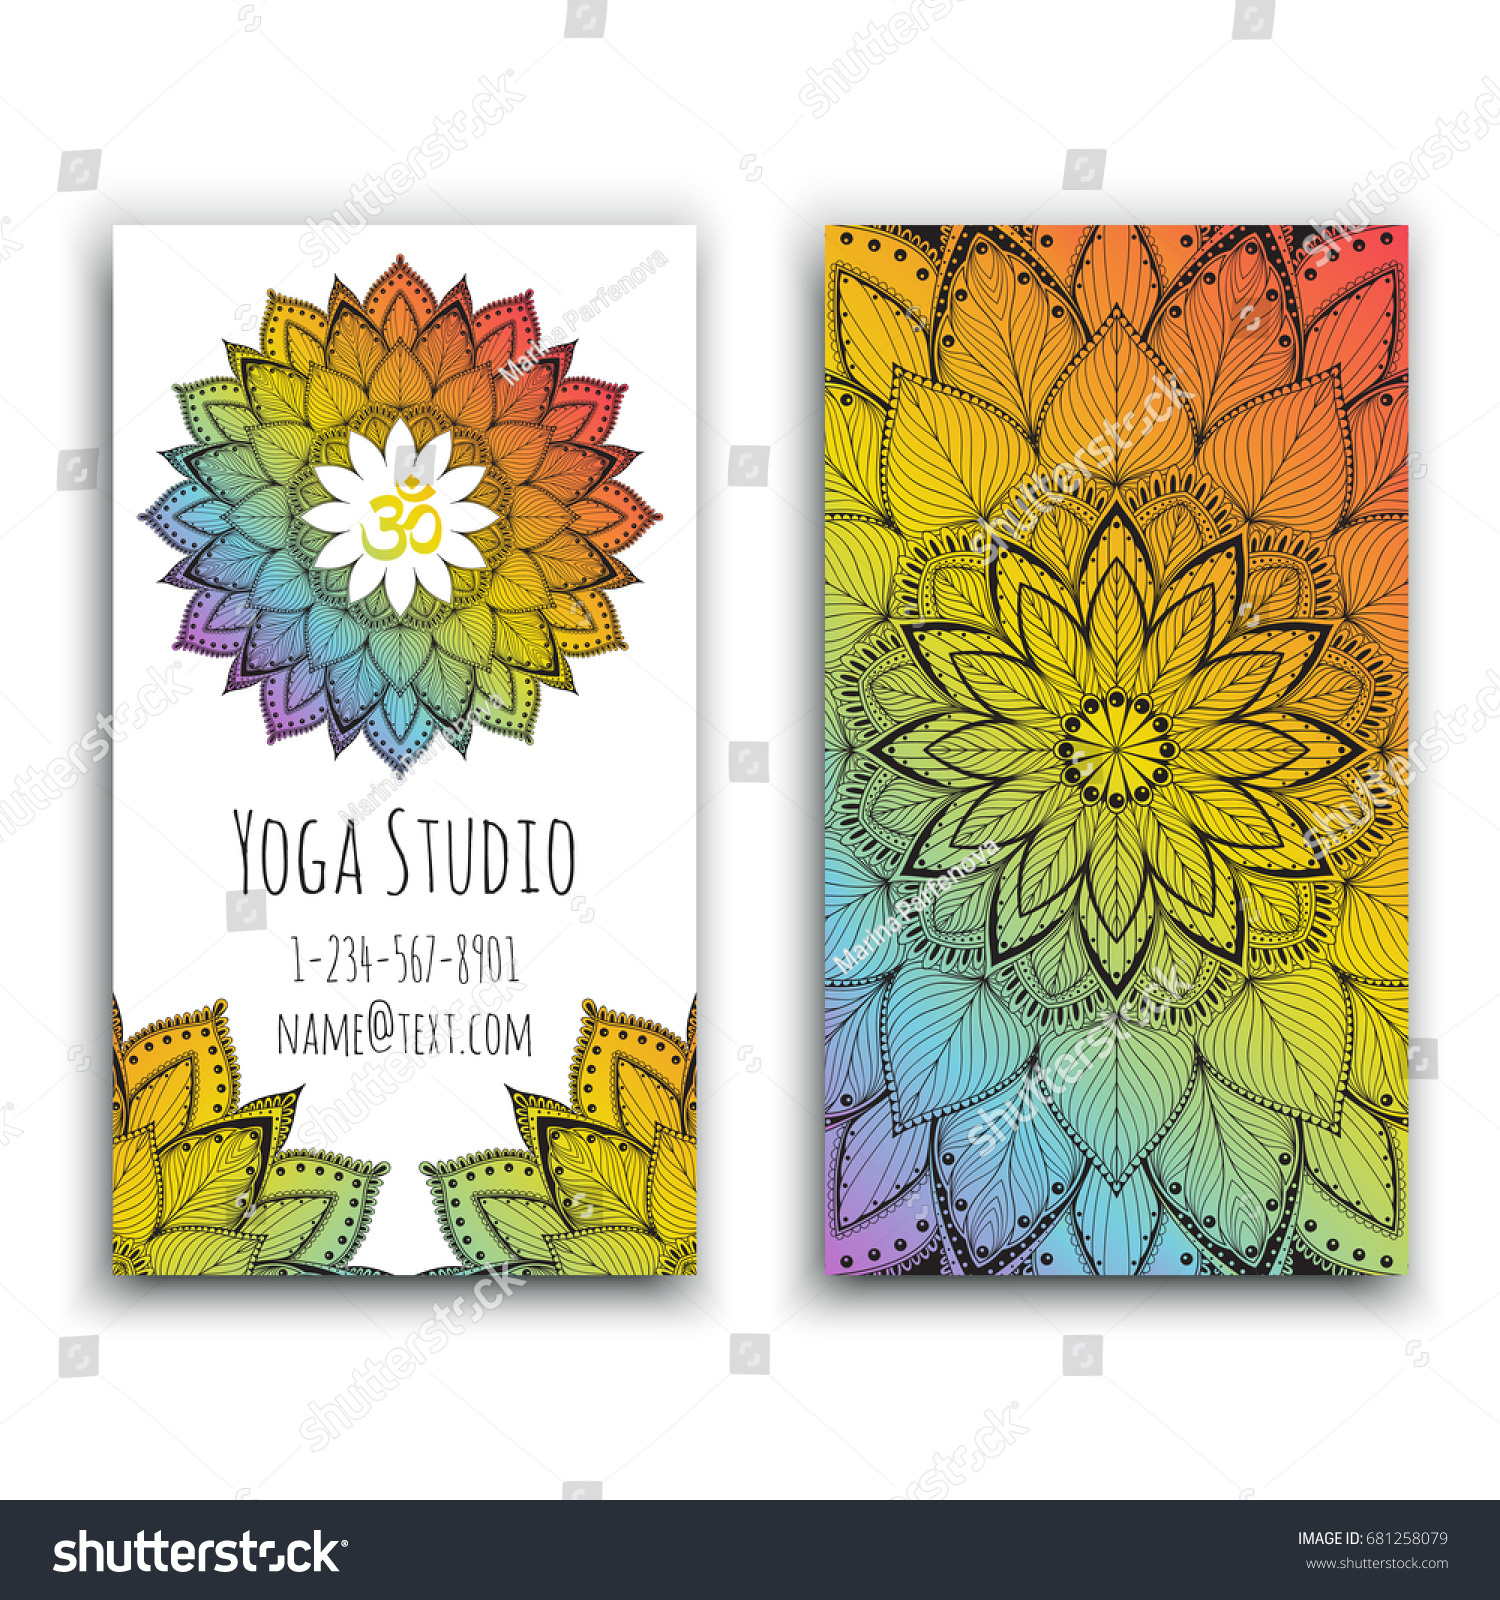 Yoga Studio Business Card Mandala Design Stock Vector Royalty Free 681258079